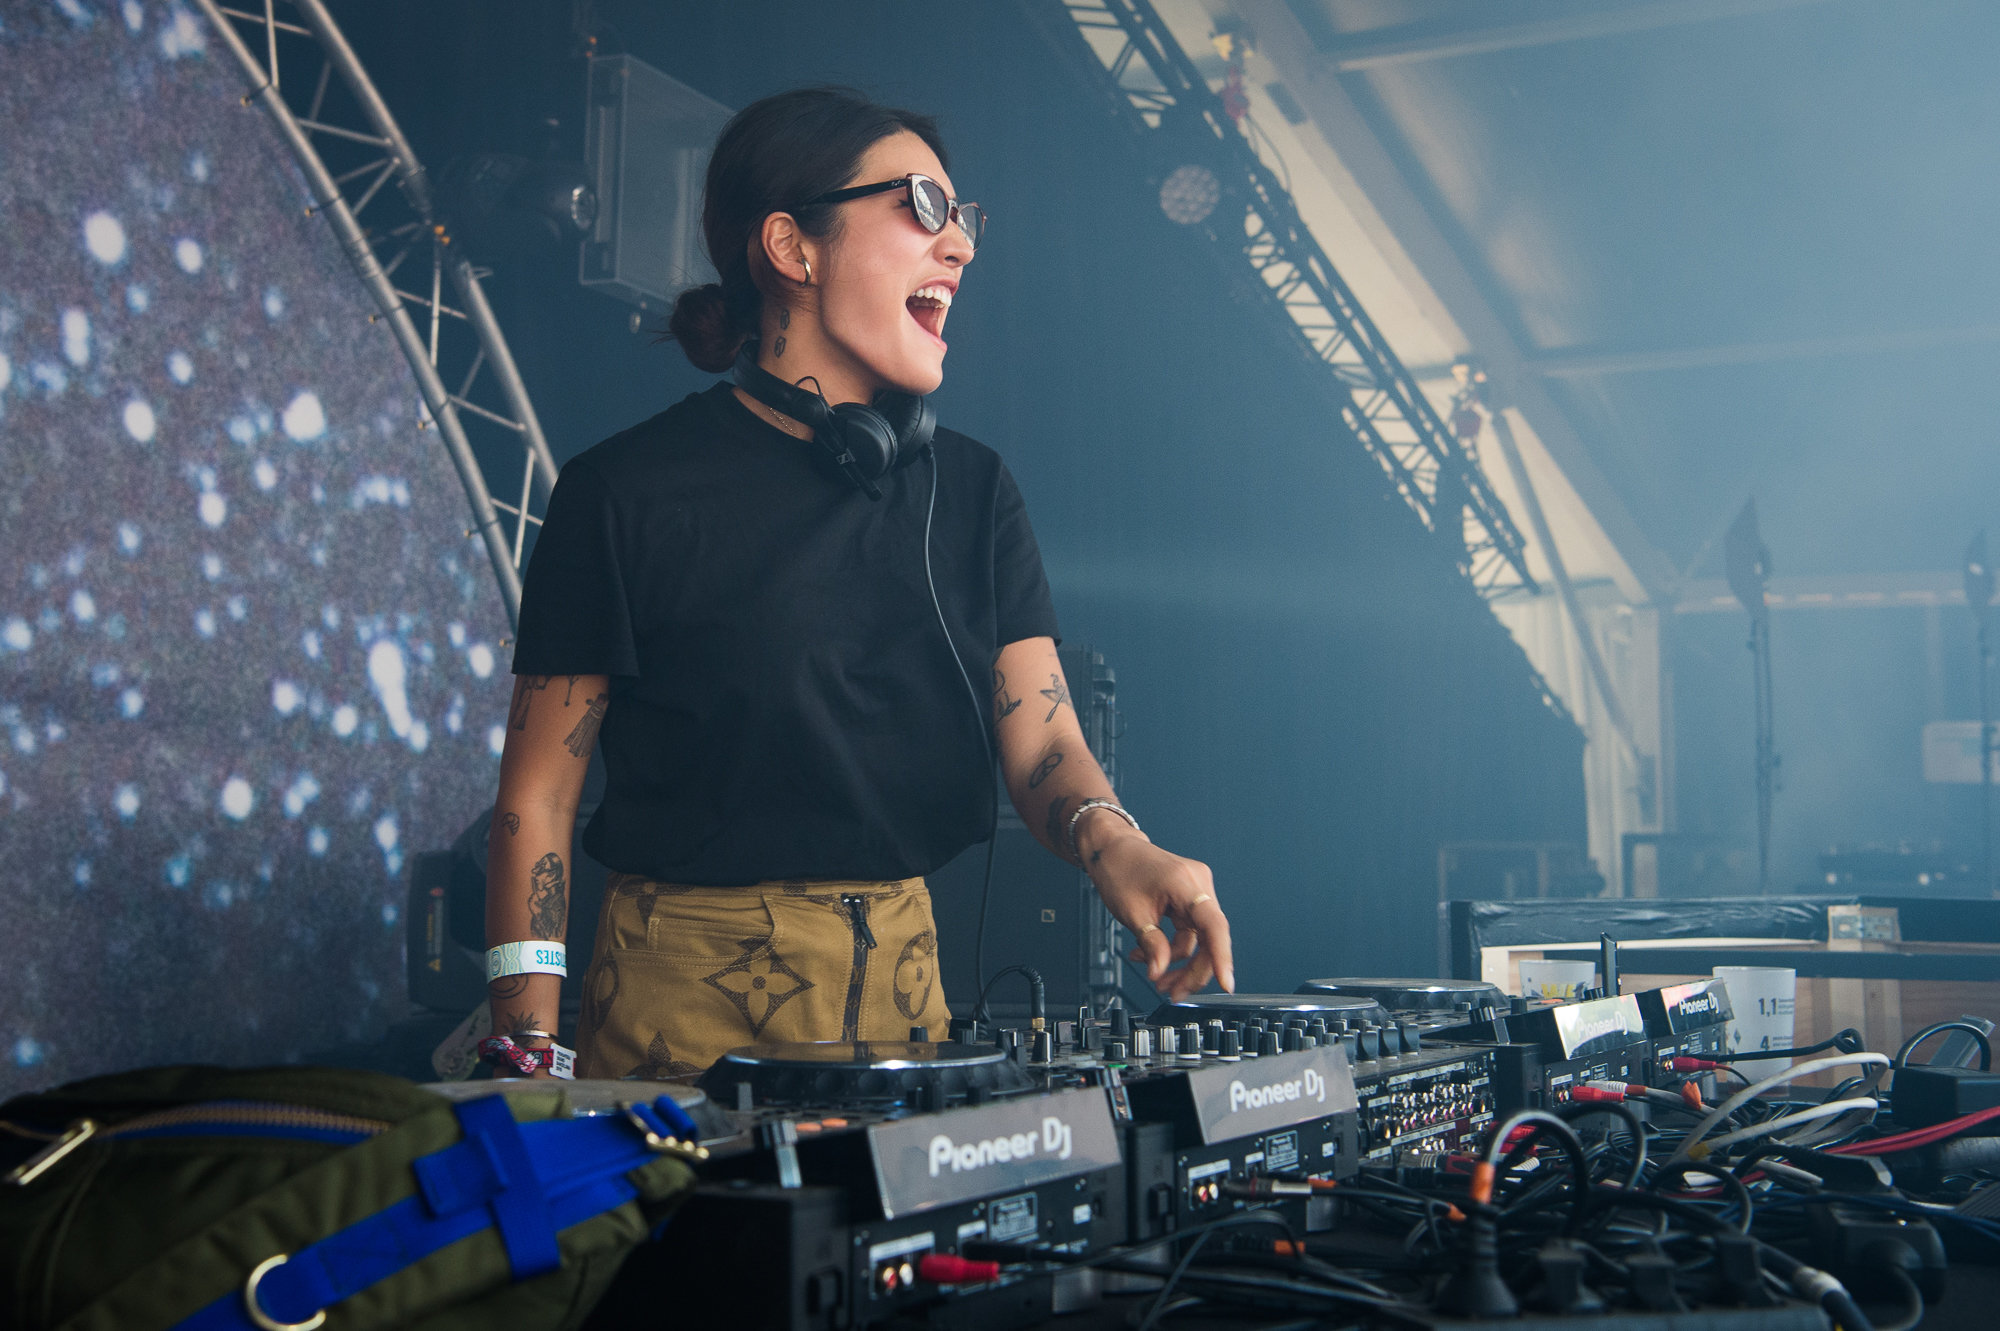 Peggy Gou Is Kicking Her Electronic Music Career to the Next Level